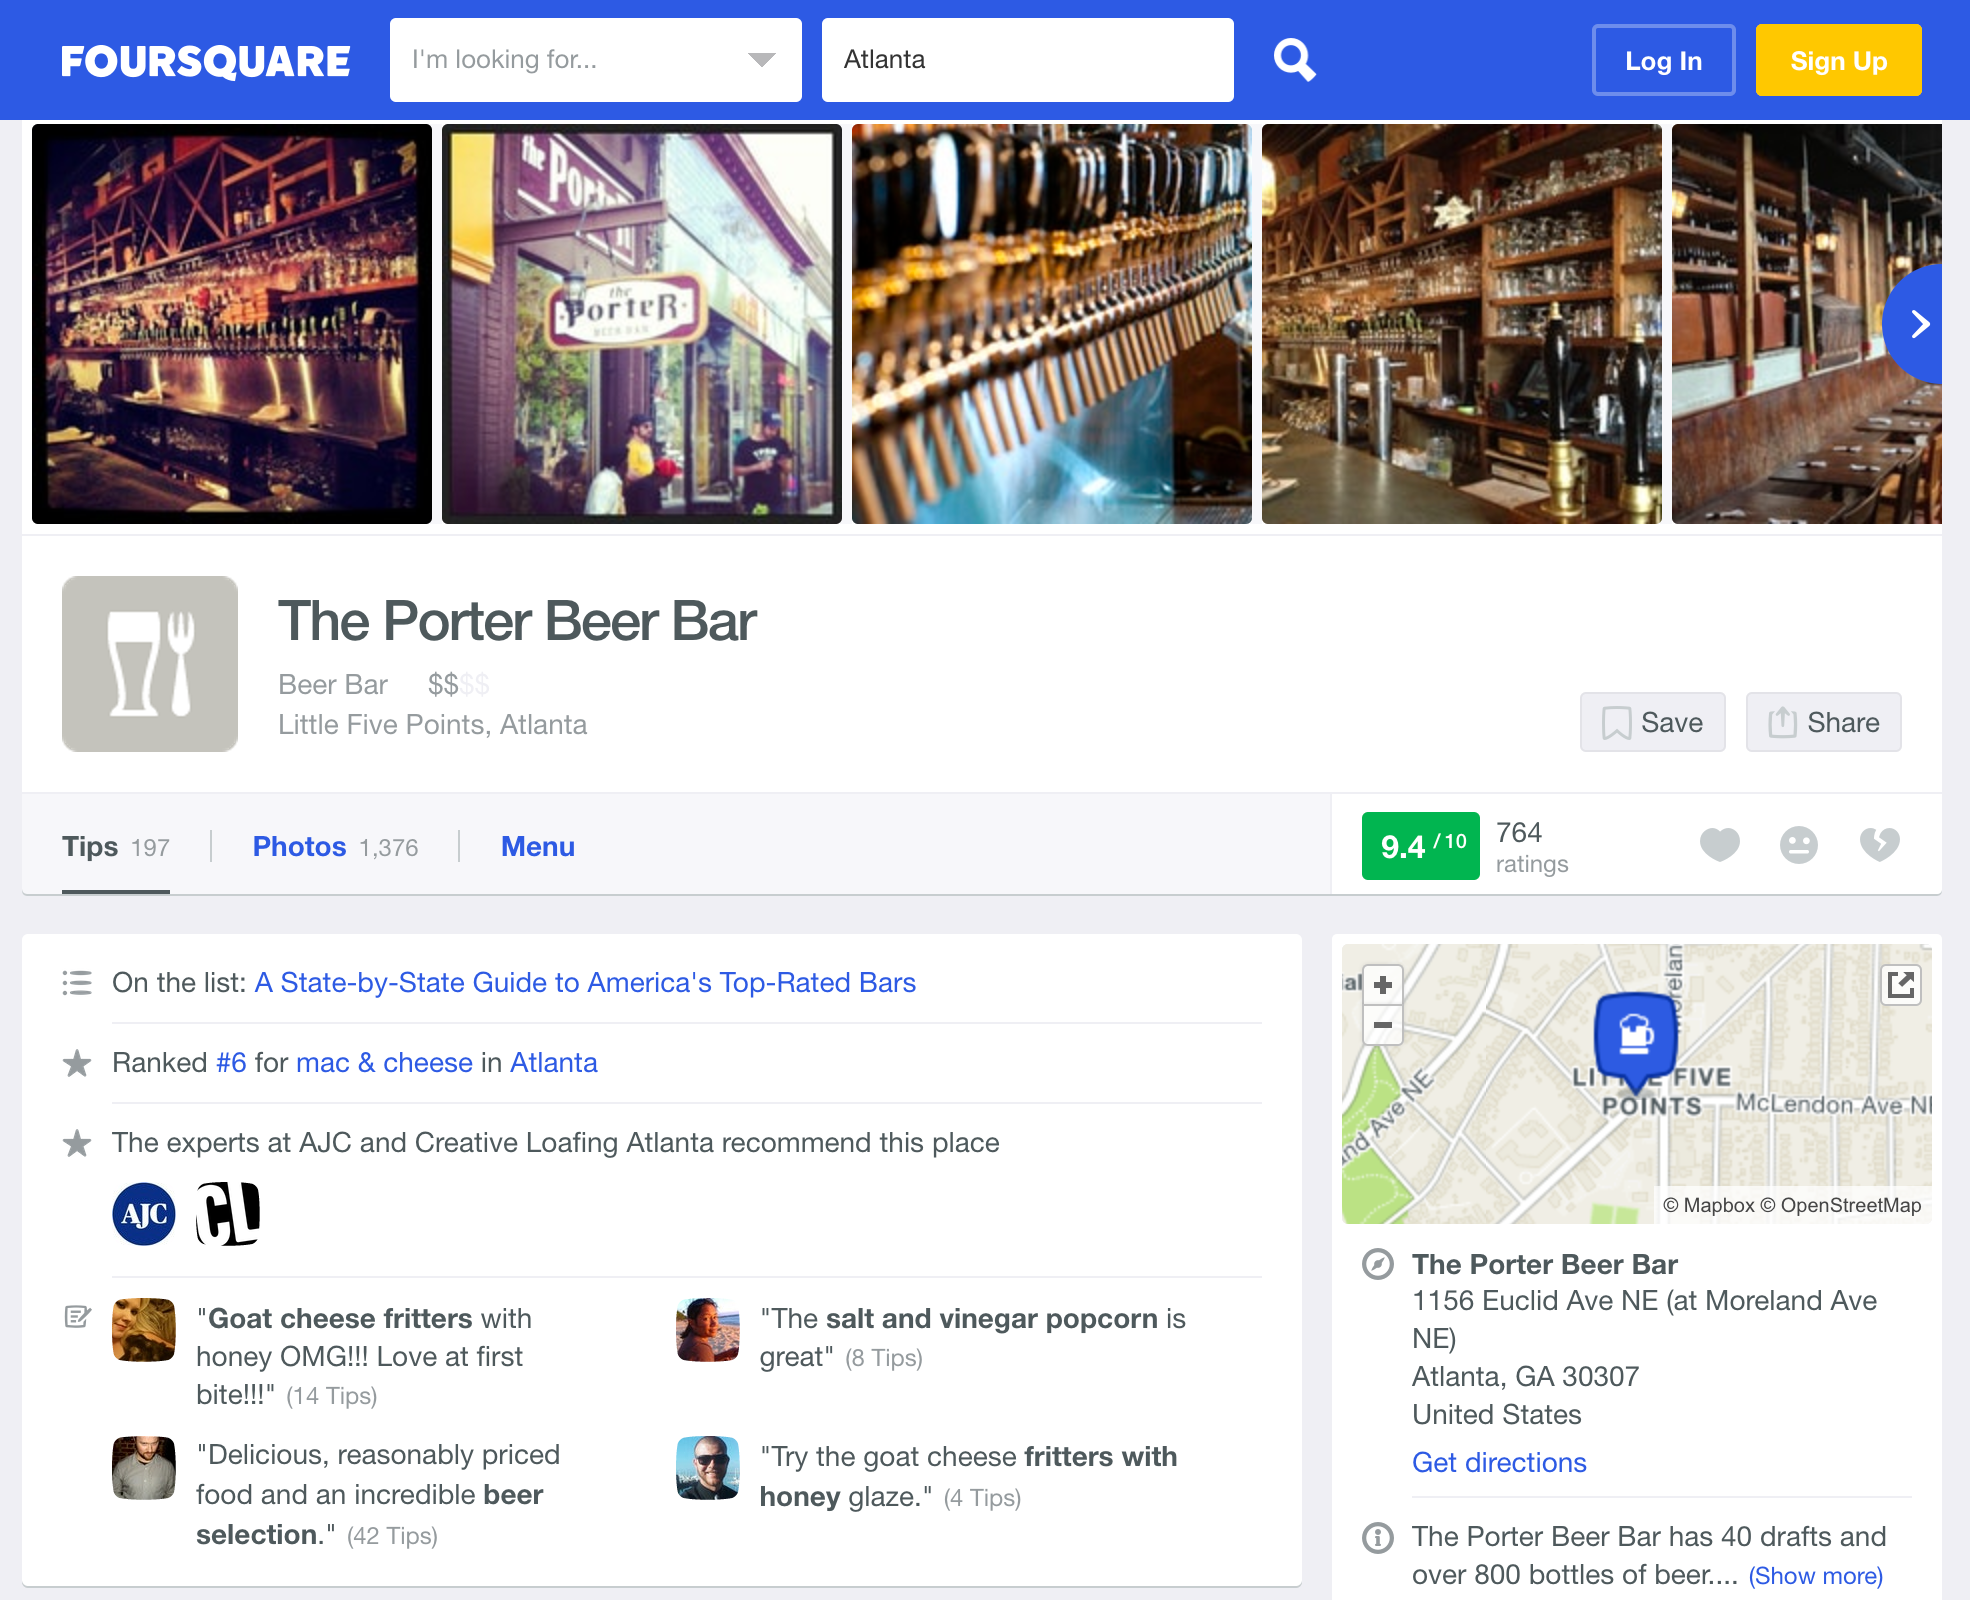 Foursquare marketing for bars and restaurants